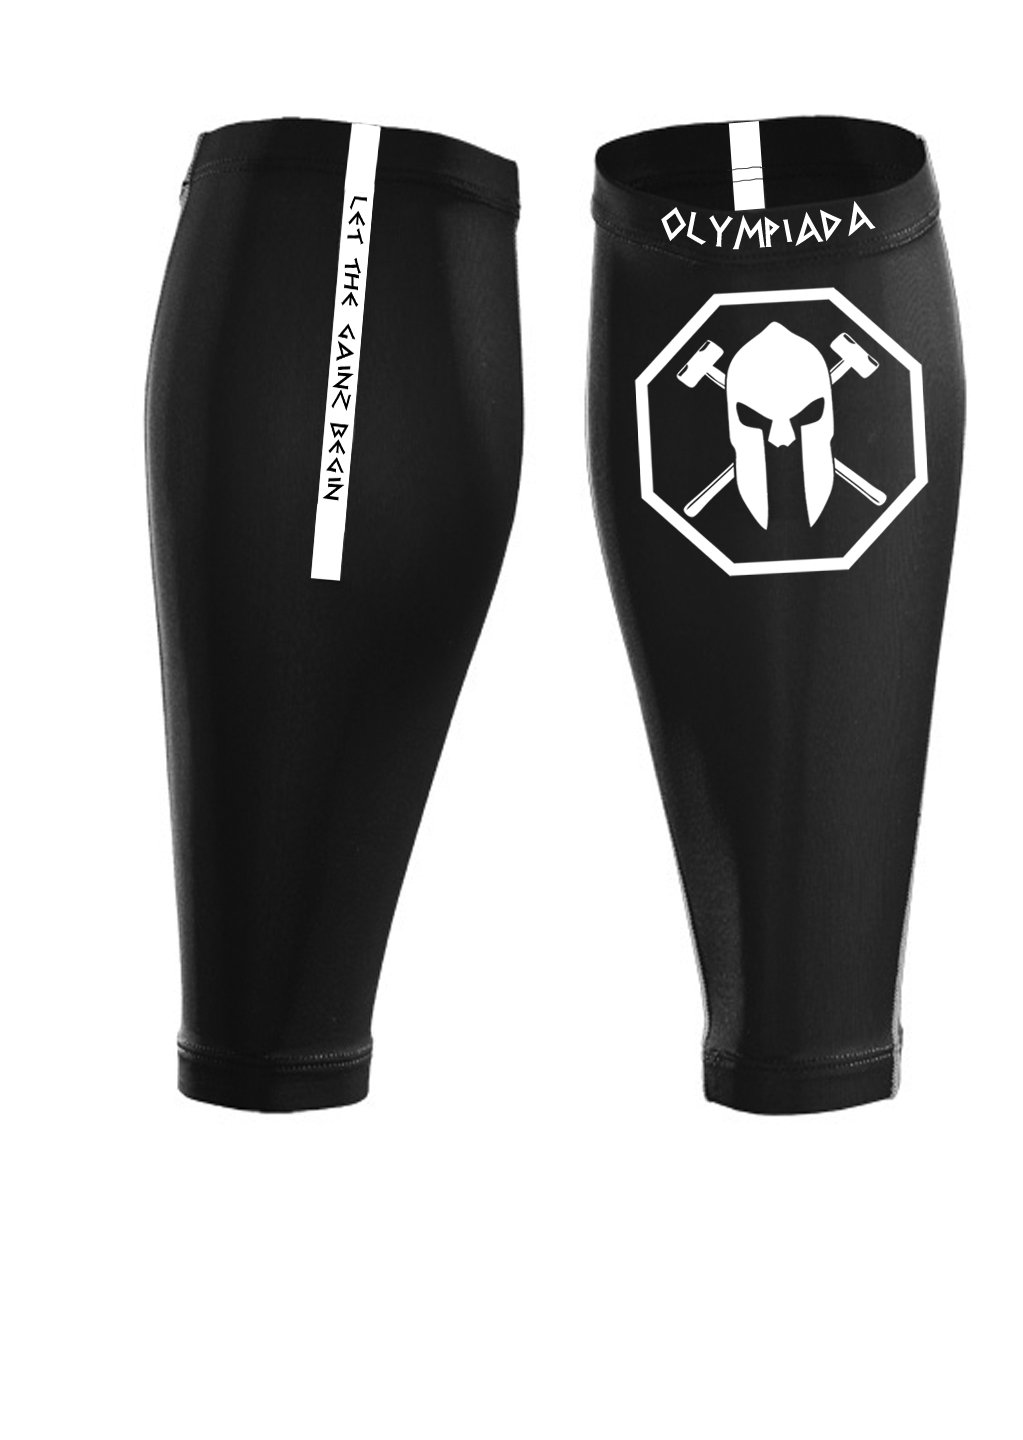 Calf Compression Sleeves (1 Pair)Guards Against Shin Splints: Running, Sprinting, Jogging, Walking, Basketball, Cycling and Fitness